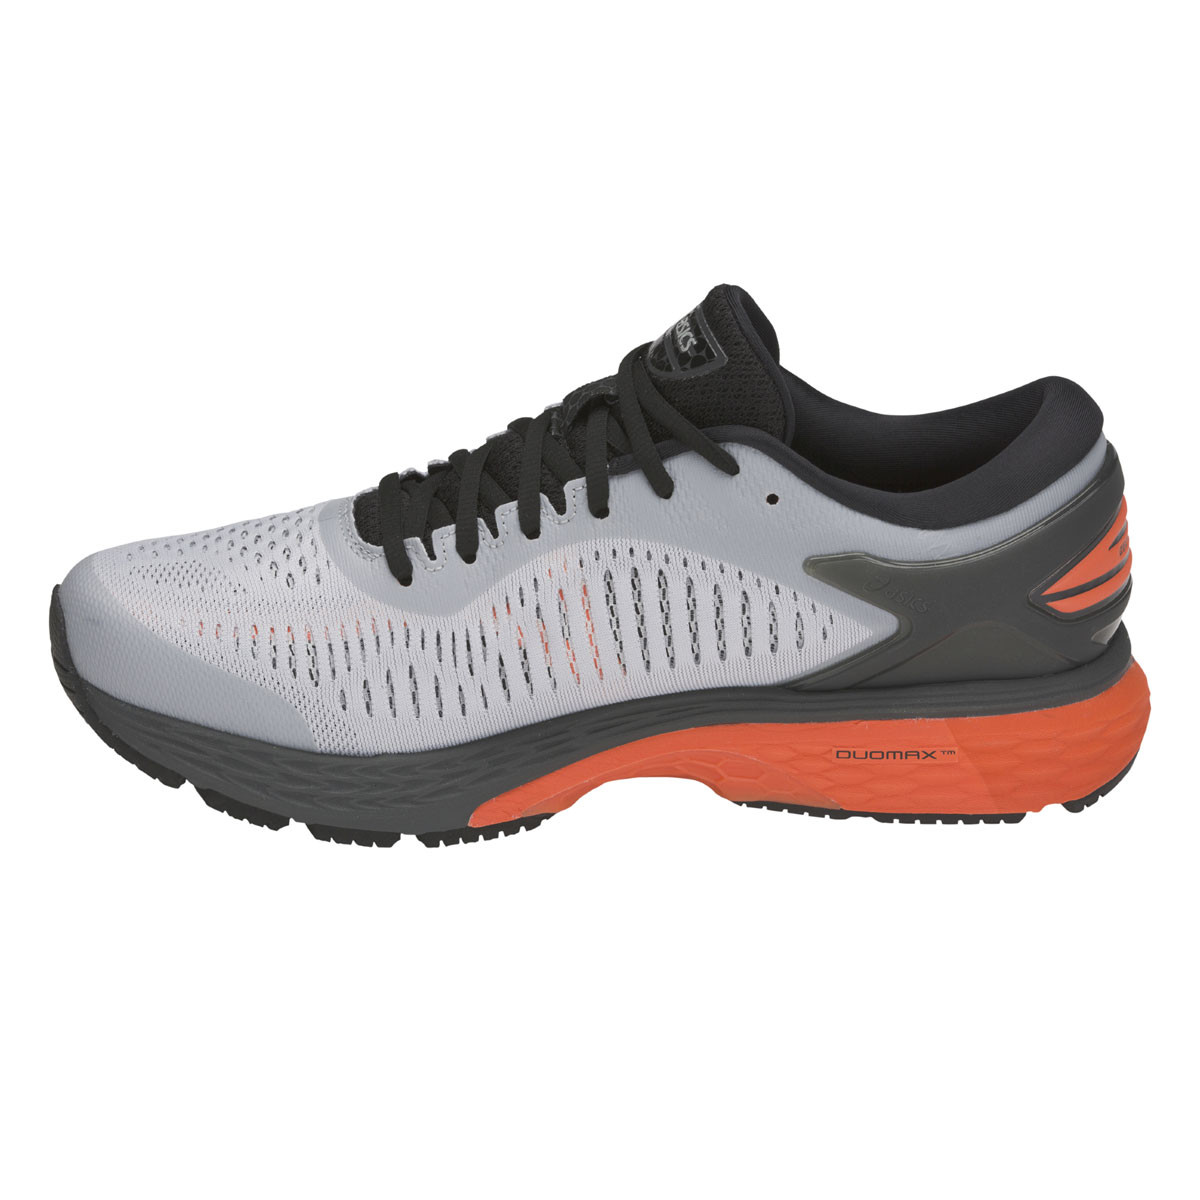 Chaussure de running Gel Kayano 25 - Mid Grey/Nova Orange 2